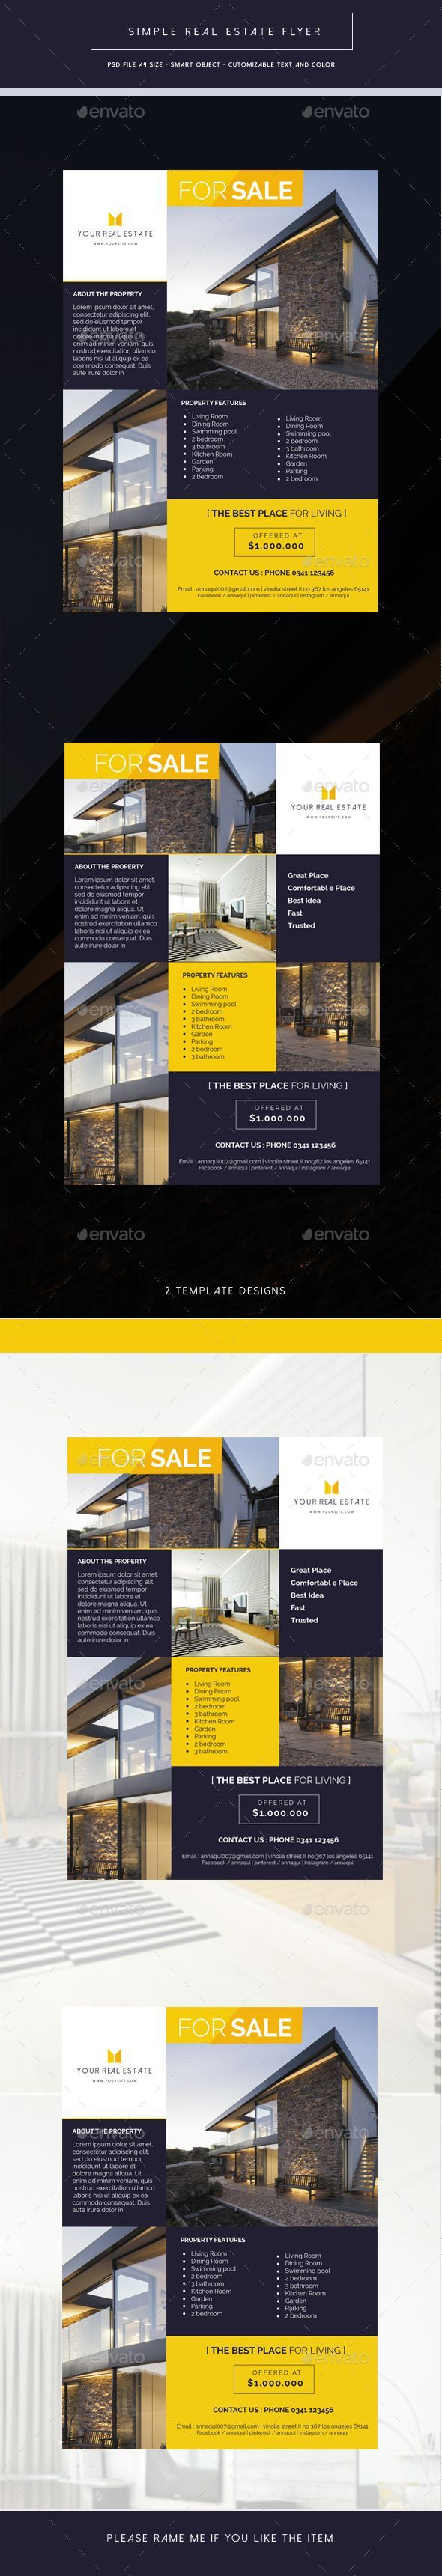 Simple Real Estate Flyer by vegasuz This Simple Real Estate Flyer Template, can be used for promote your property product, interior design, etc.  File features :  A4